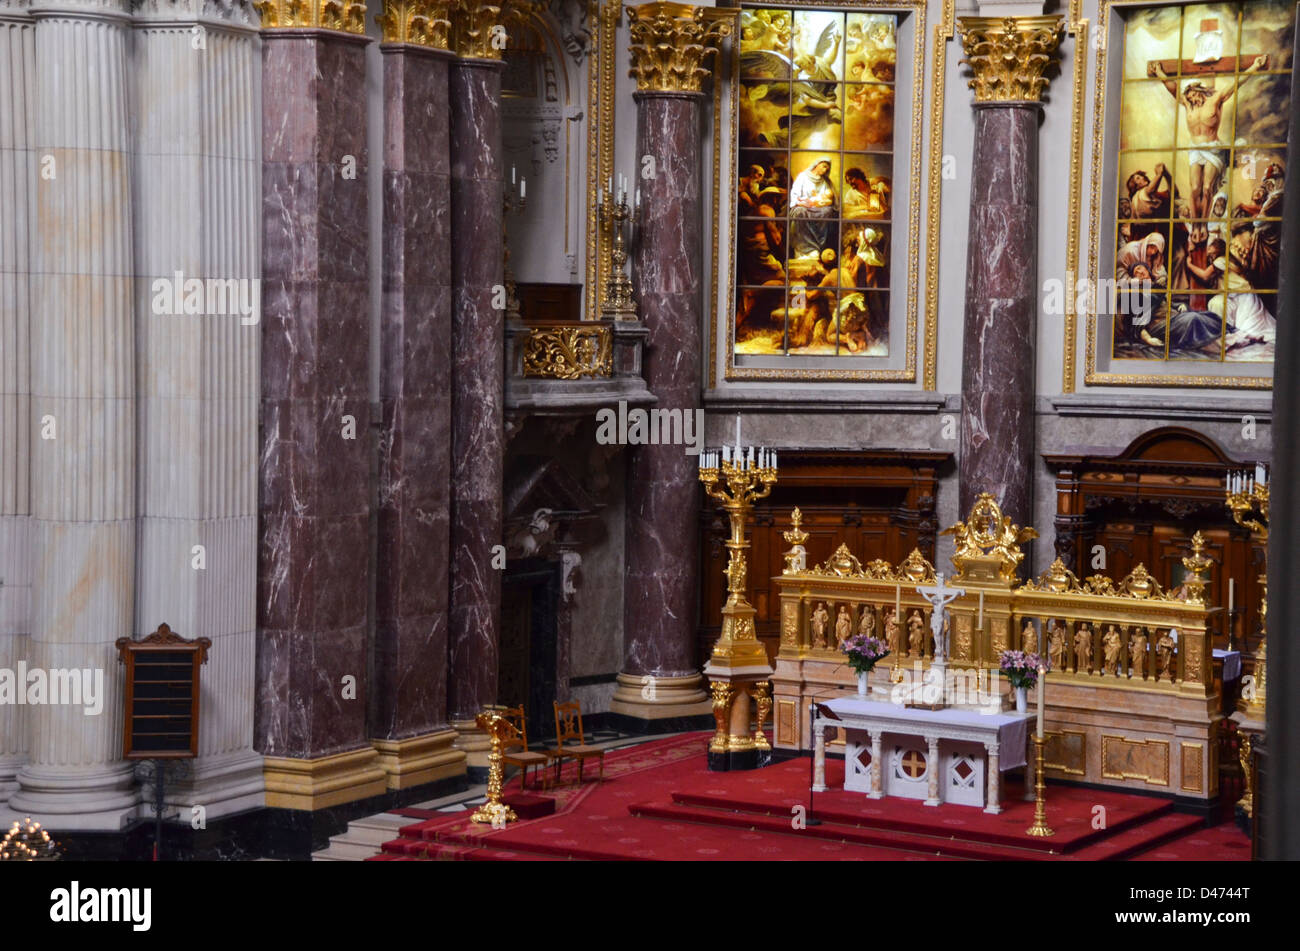 Berlin cathedral (Berliner Dom), Germany - Stock Image